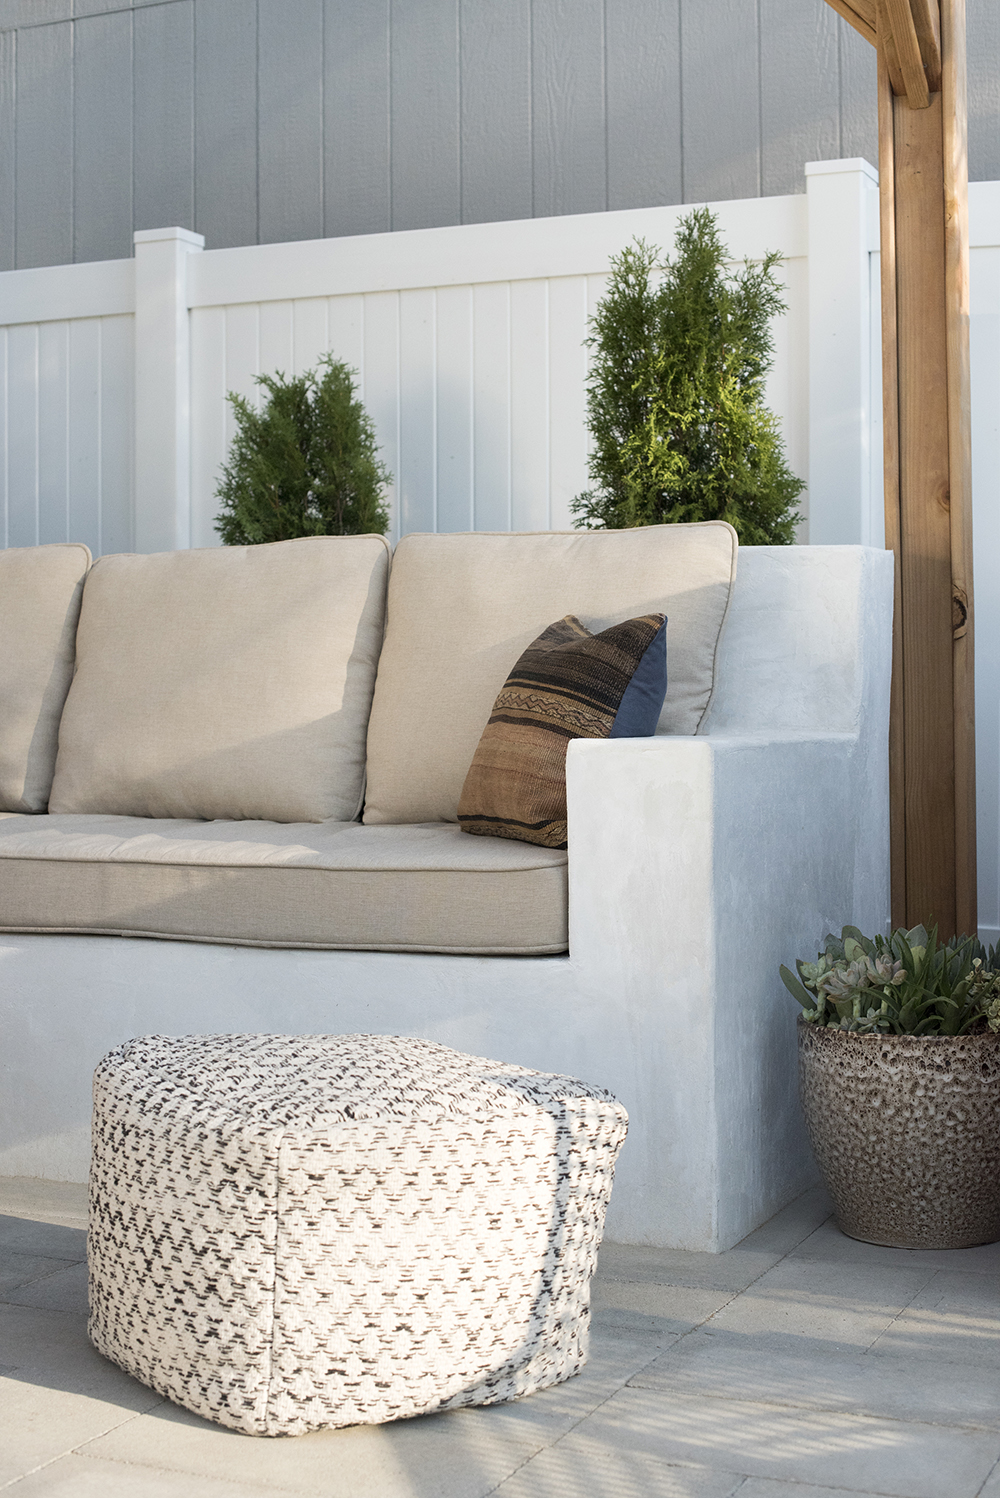 Custom Stucco Seating DIY